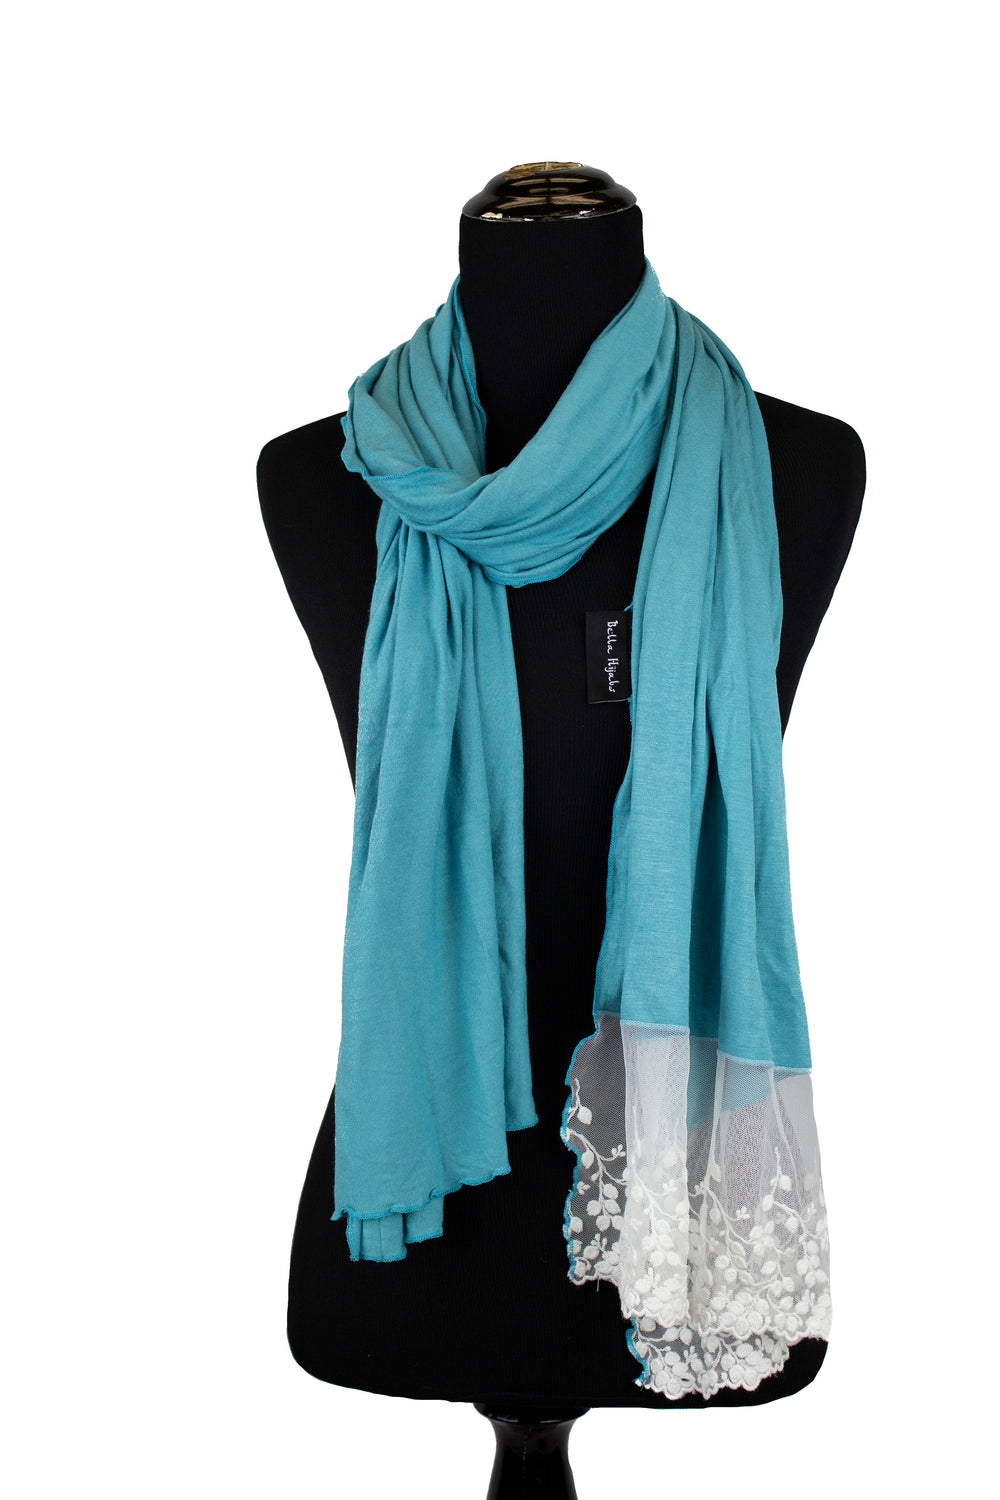 jersey hijab in seafoam blue with white lace